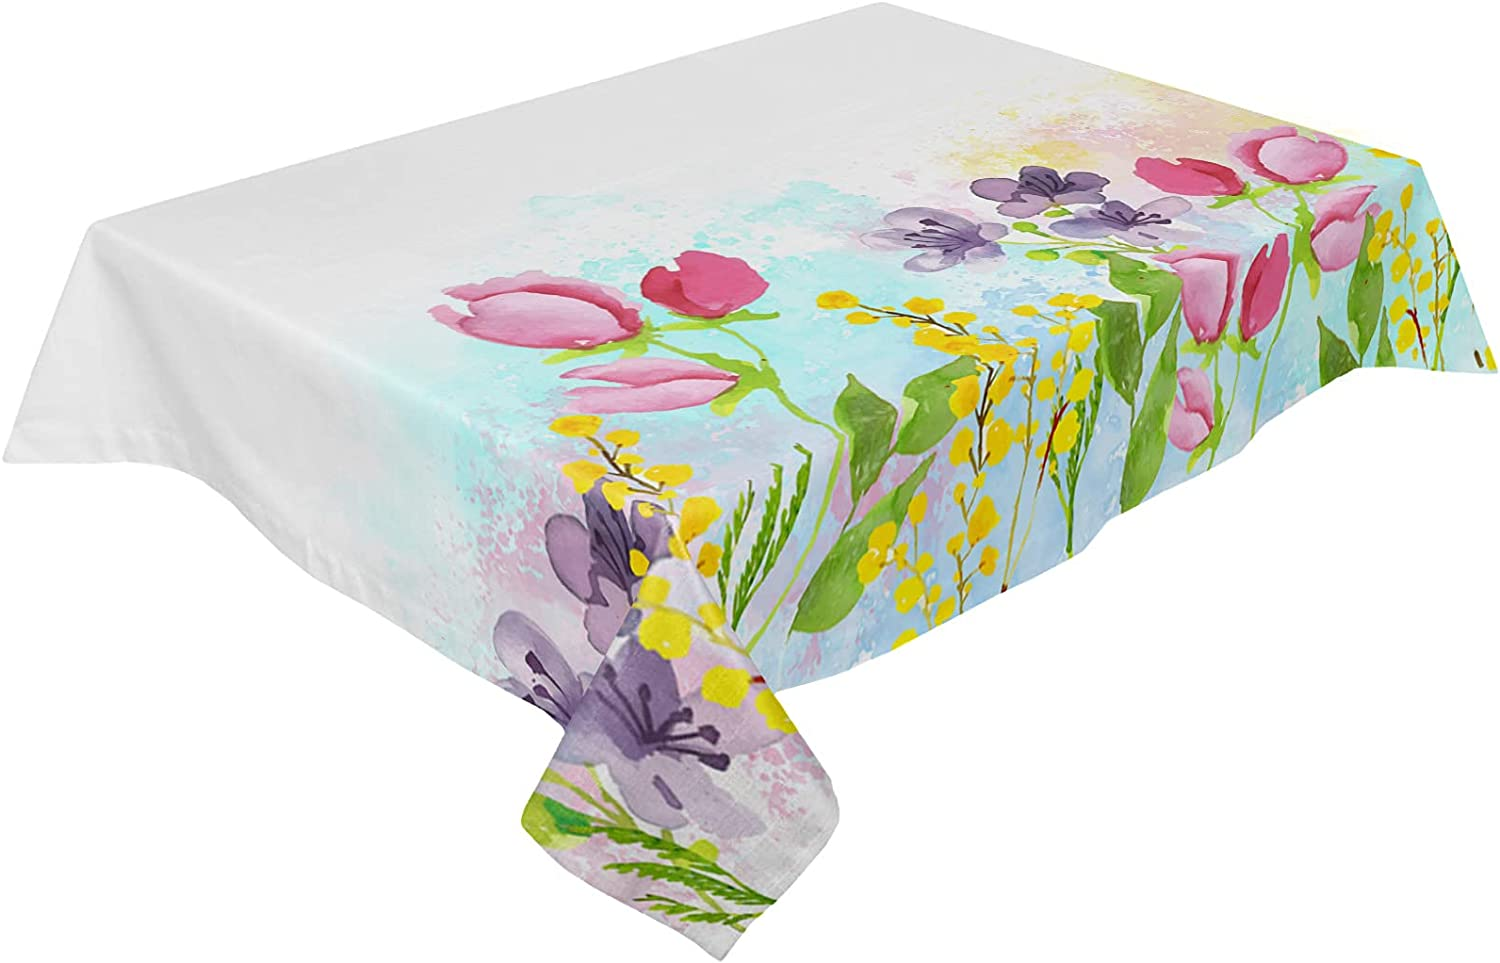 Cotton Linen Tablecloth National uniform free shipping Colorful Outlet ☆ Free Shipping Tabl Floral Wrinkle-Free Blurry